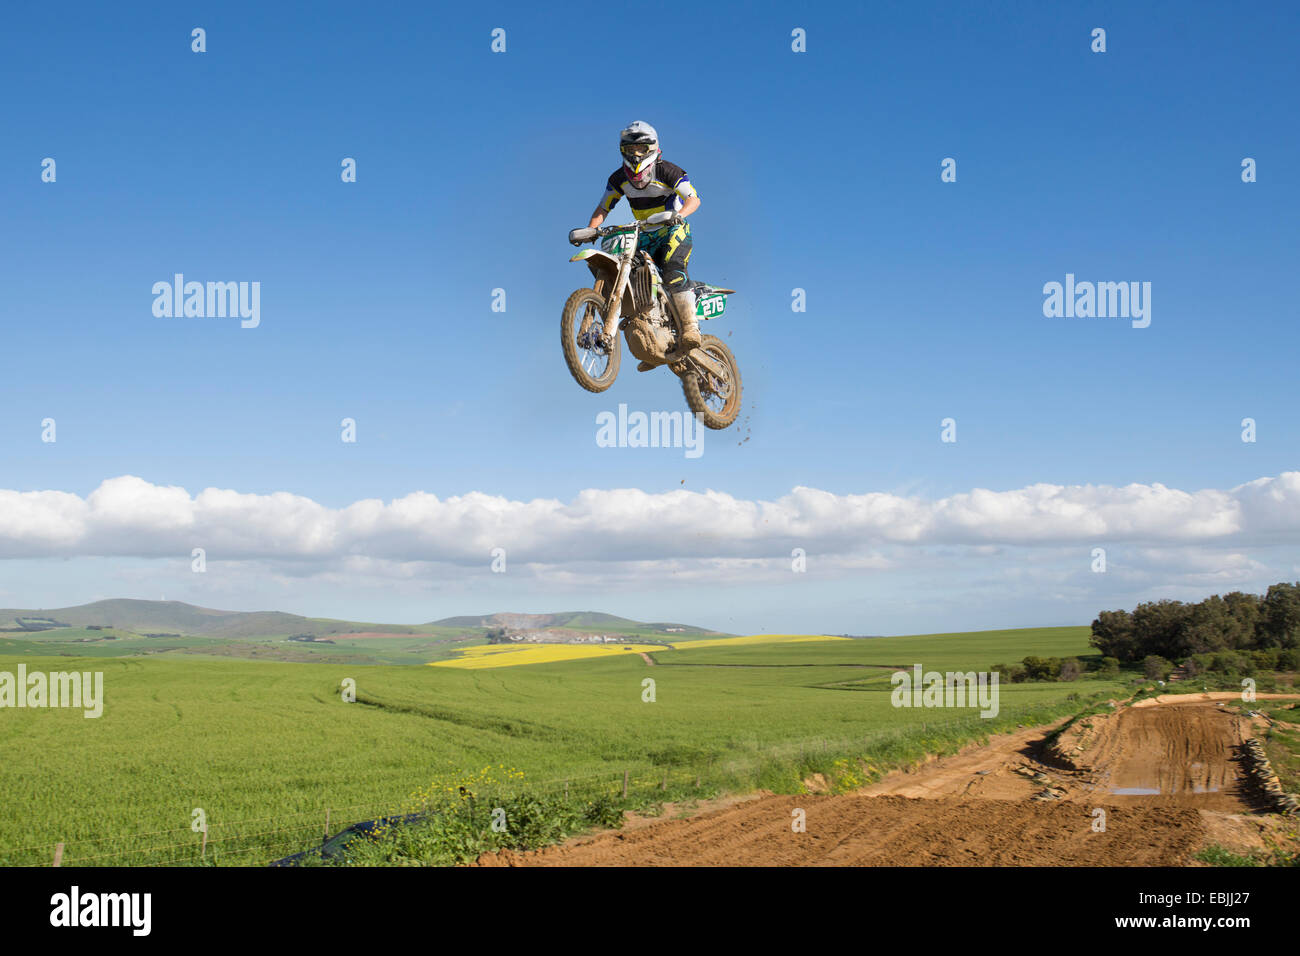 Young male motocross racer jumping mid air over landscape - Stock Image